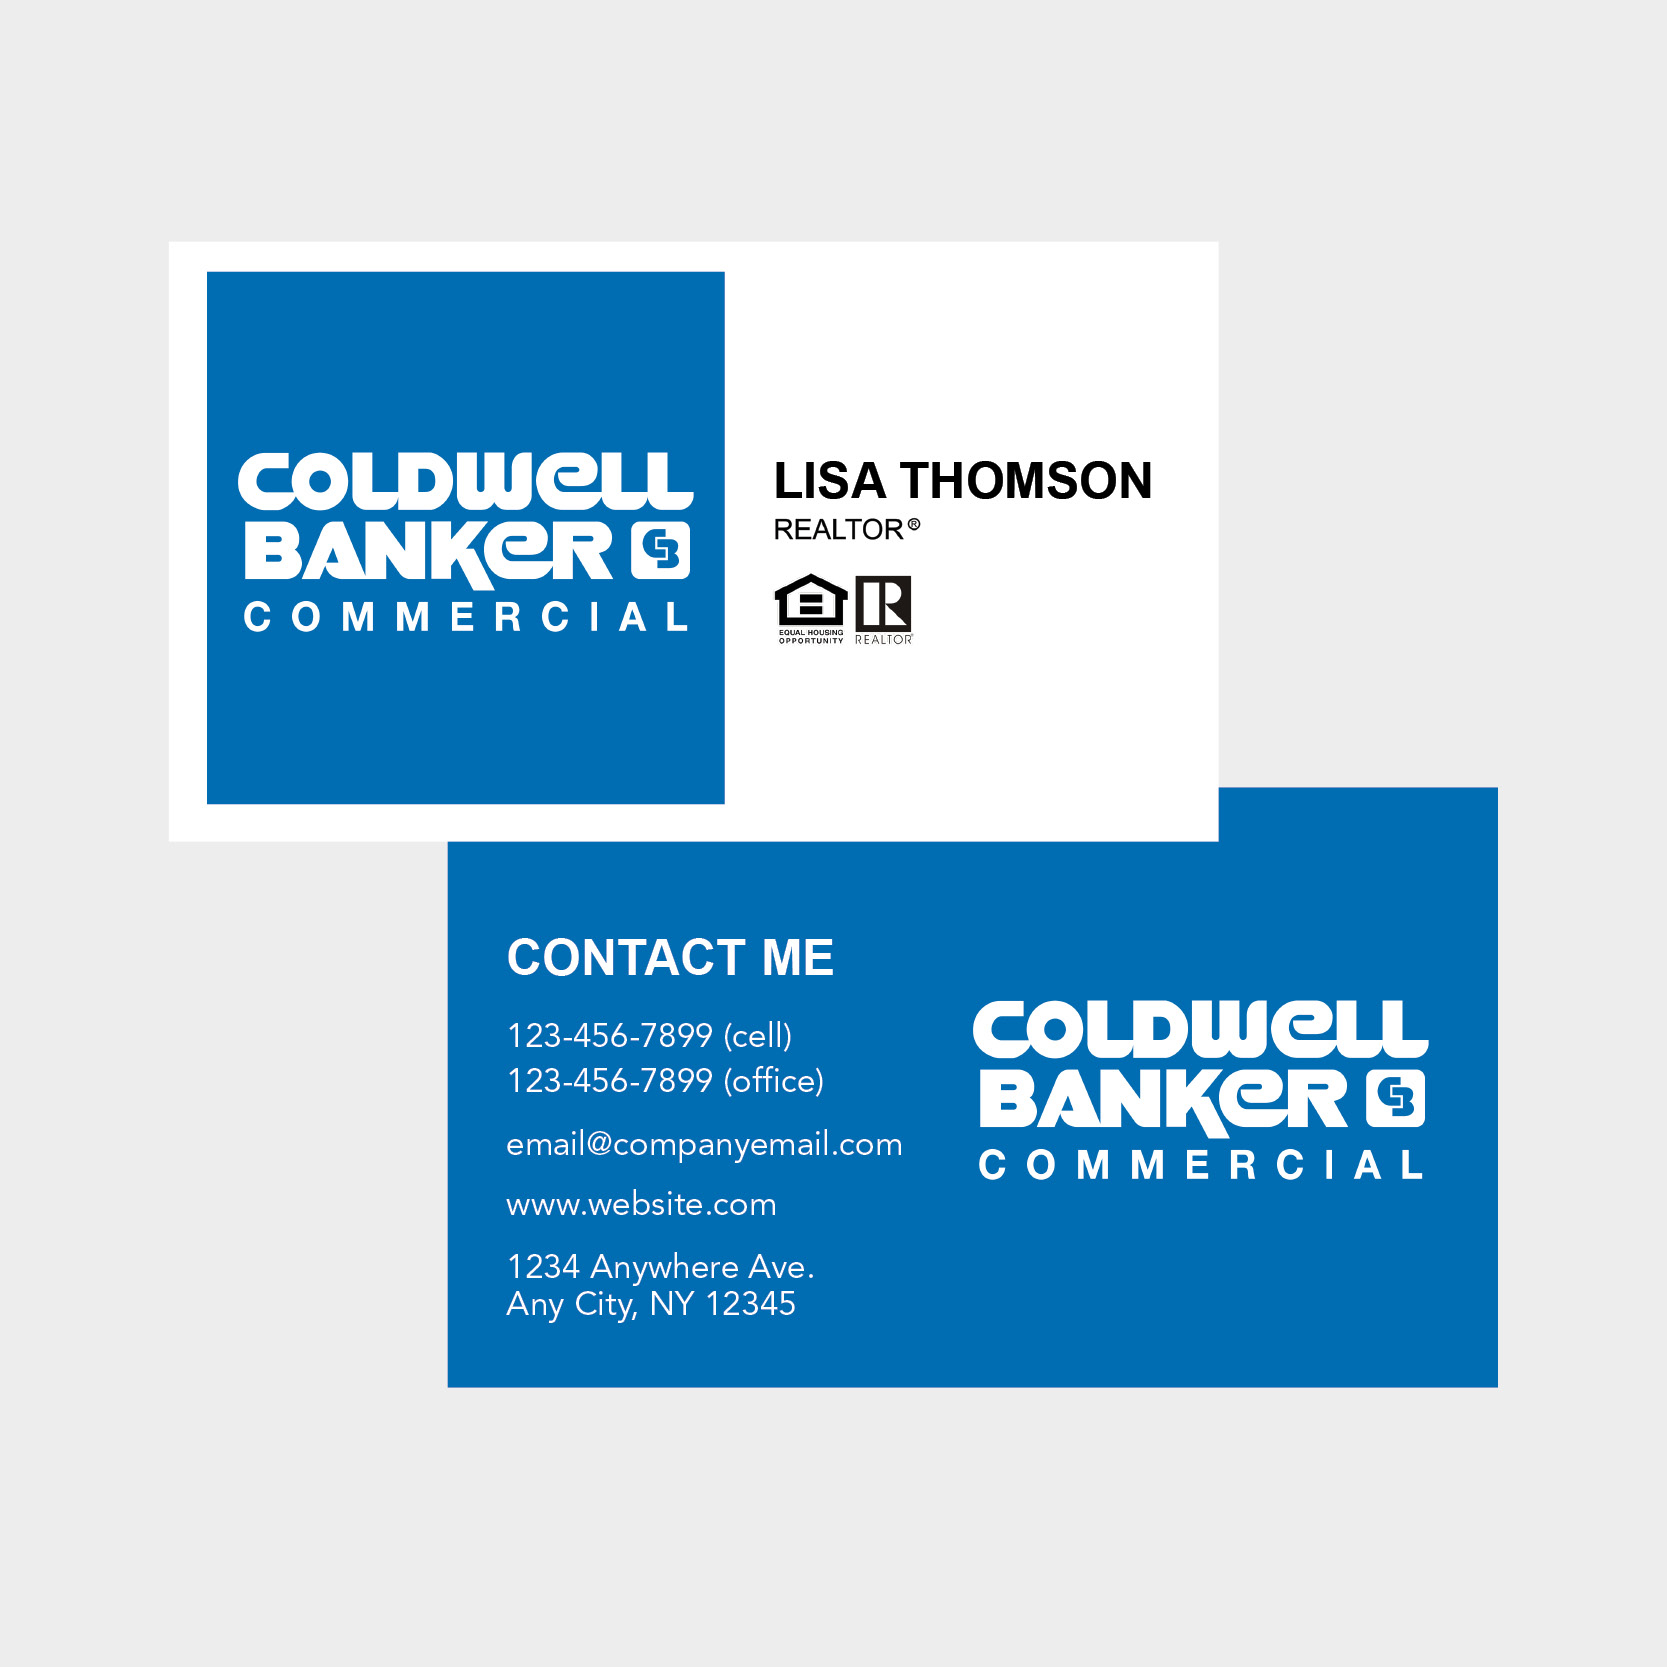 Coldwell Banker Business Cards With Coldwell Banker Business Card Template